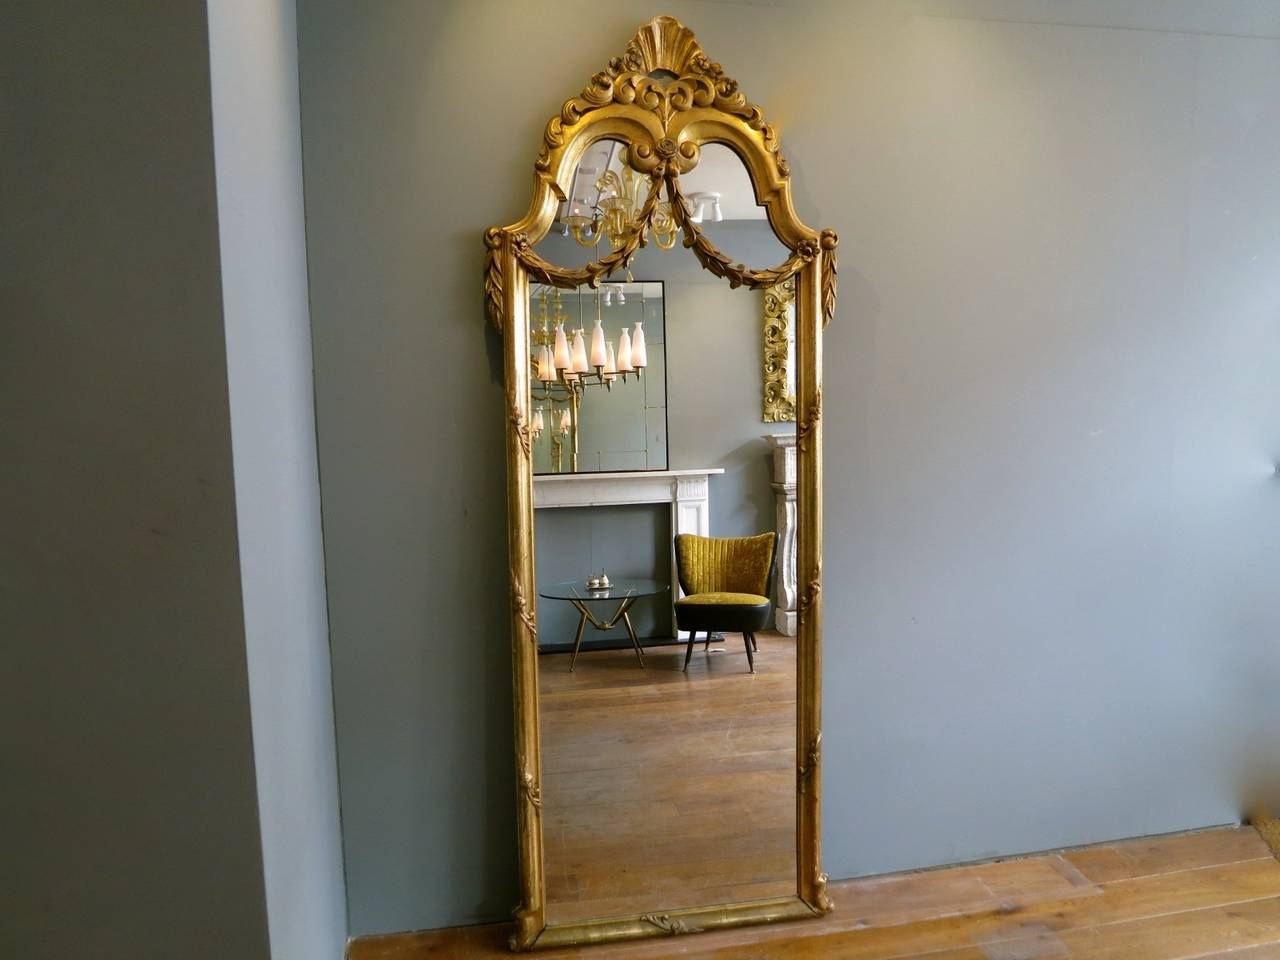 Antique French Gold Gilt Floor Standing Mirror At 1stdibs Inside French Gold Mirror (View 15 of 15)